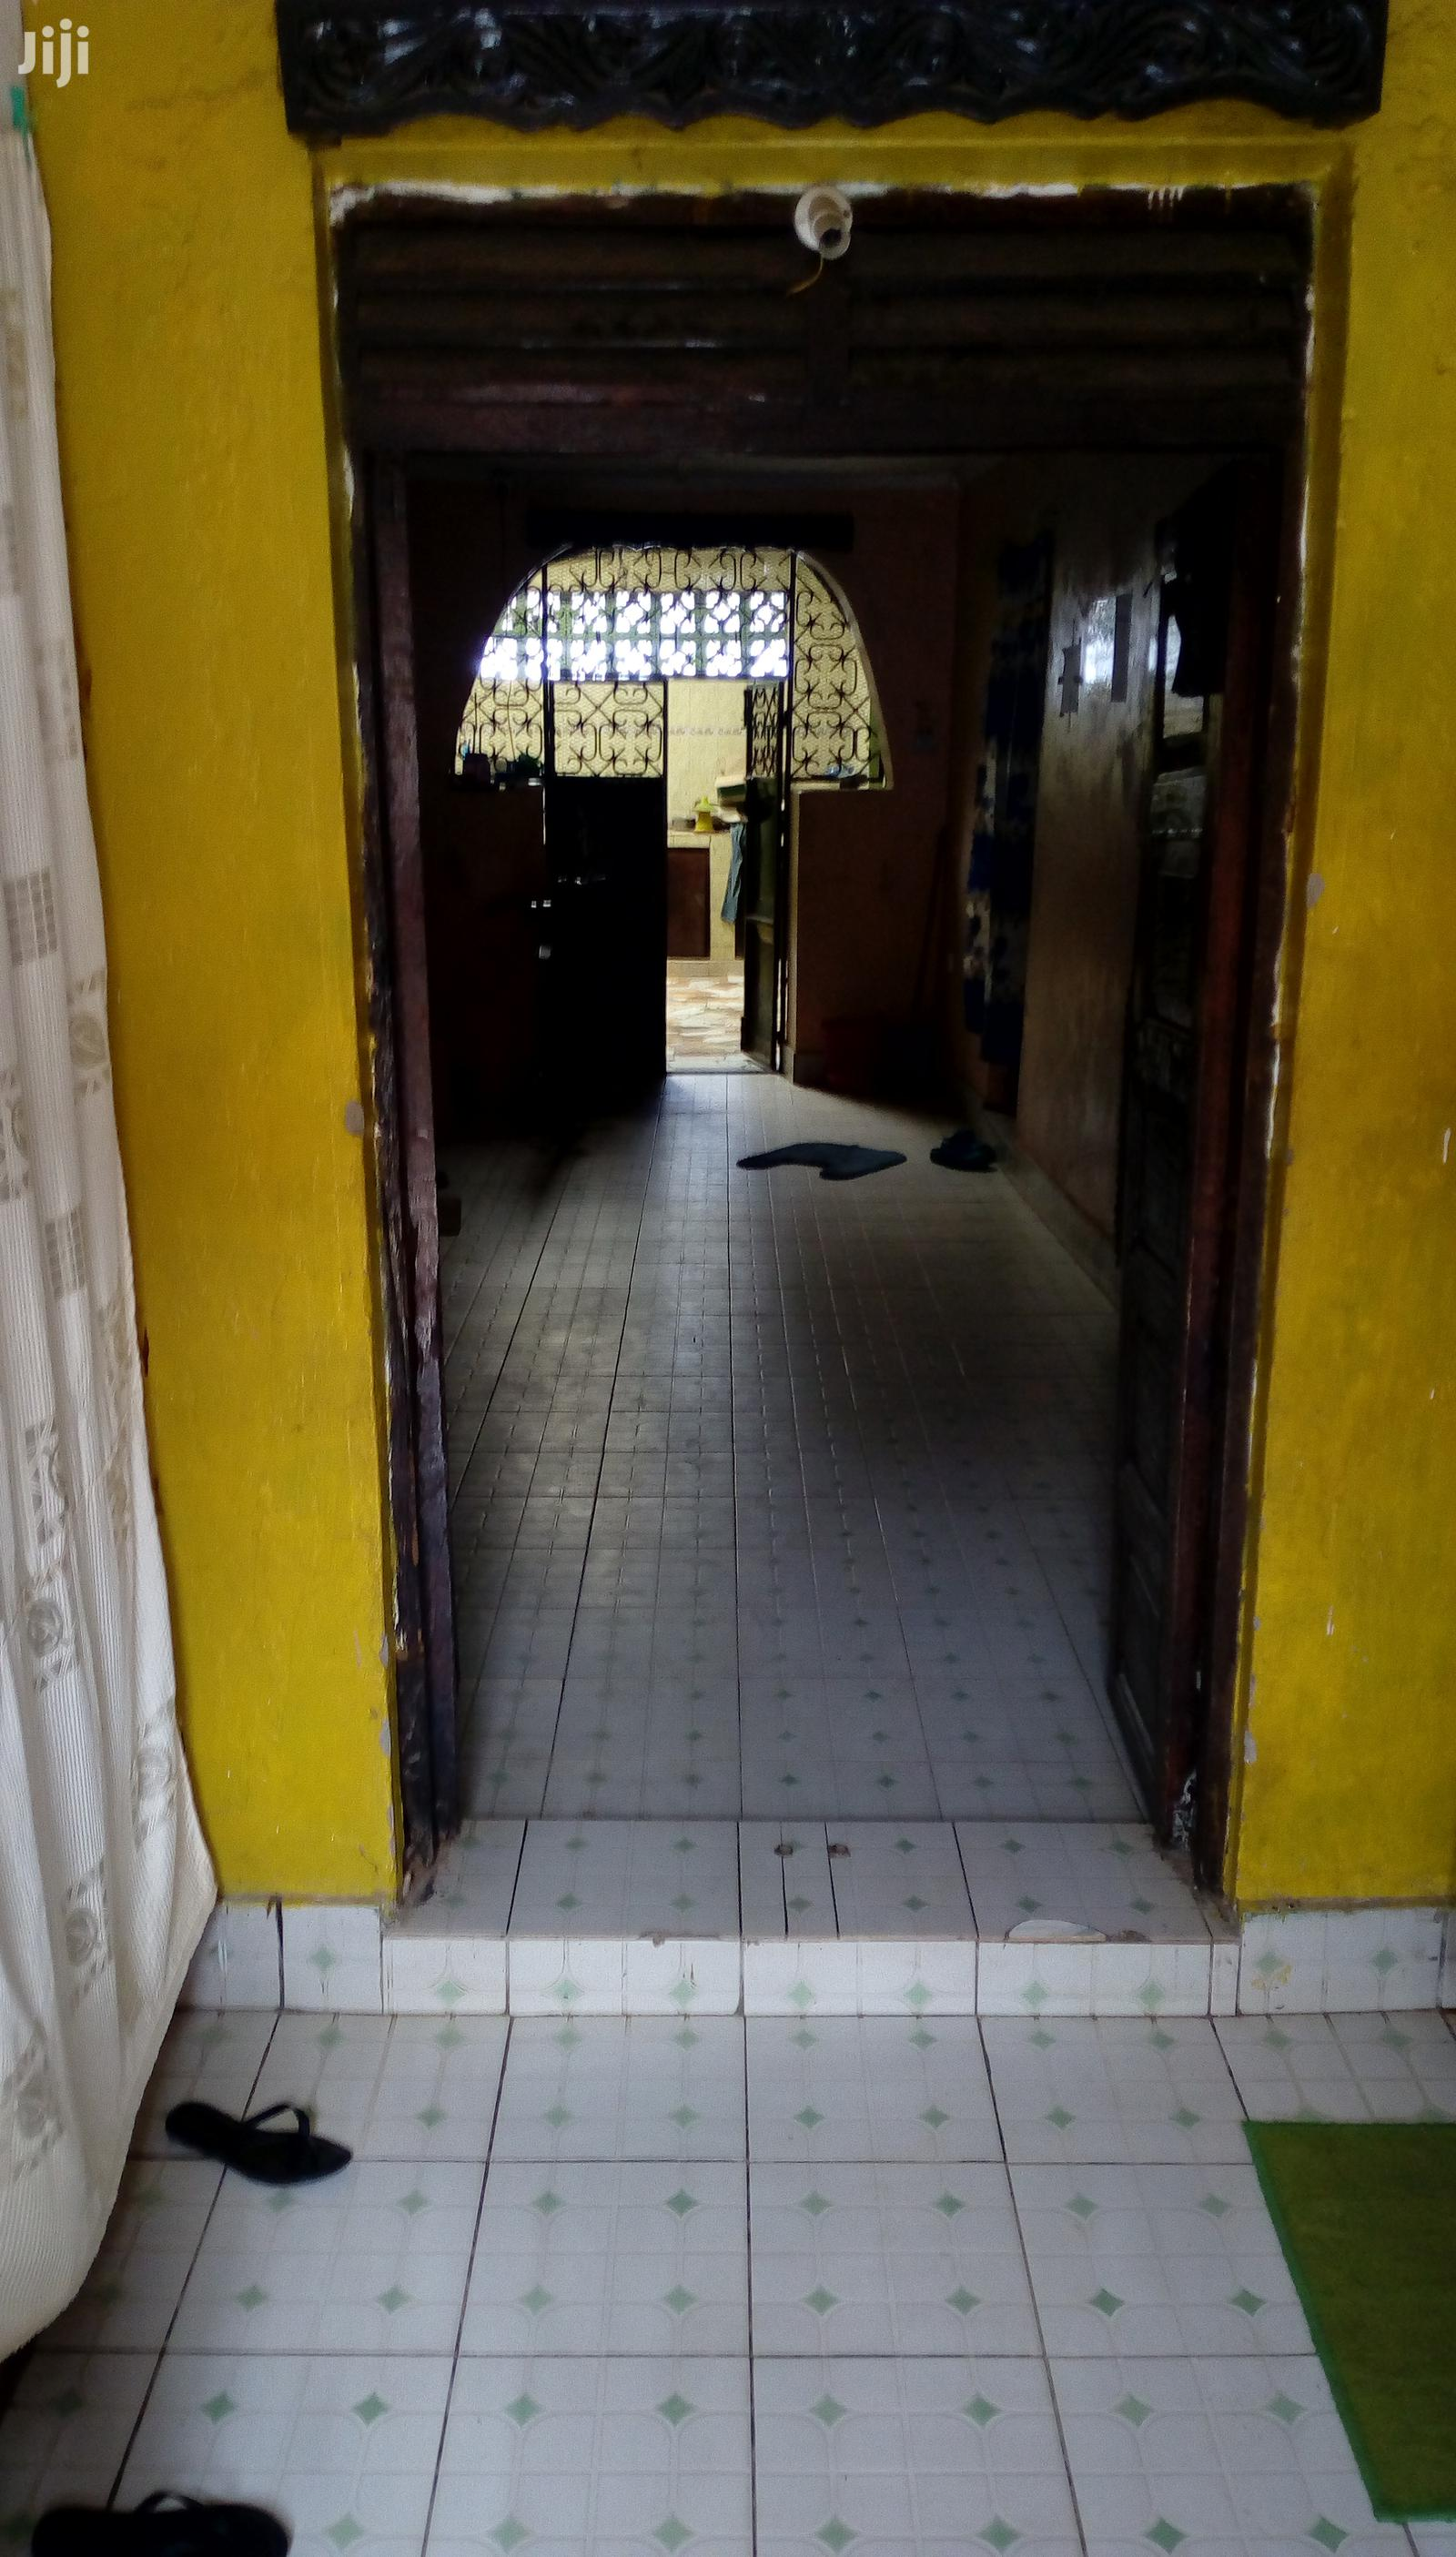 Single Room To Let At Mshomoroni (Ref Hse 411S)   Houses & Apartments For Rent for sale in Kisauni, Mombasa, Kenya